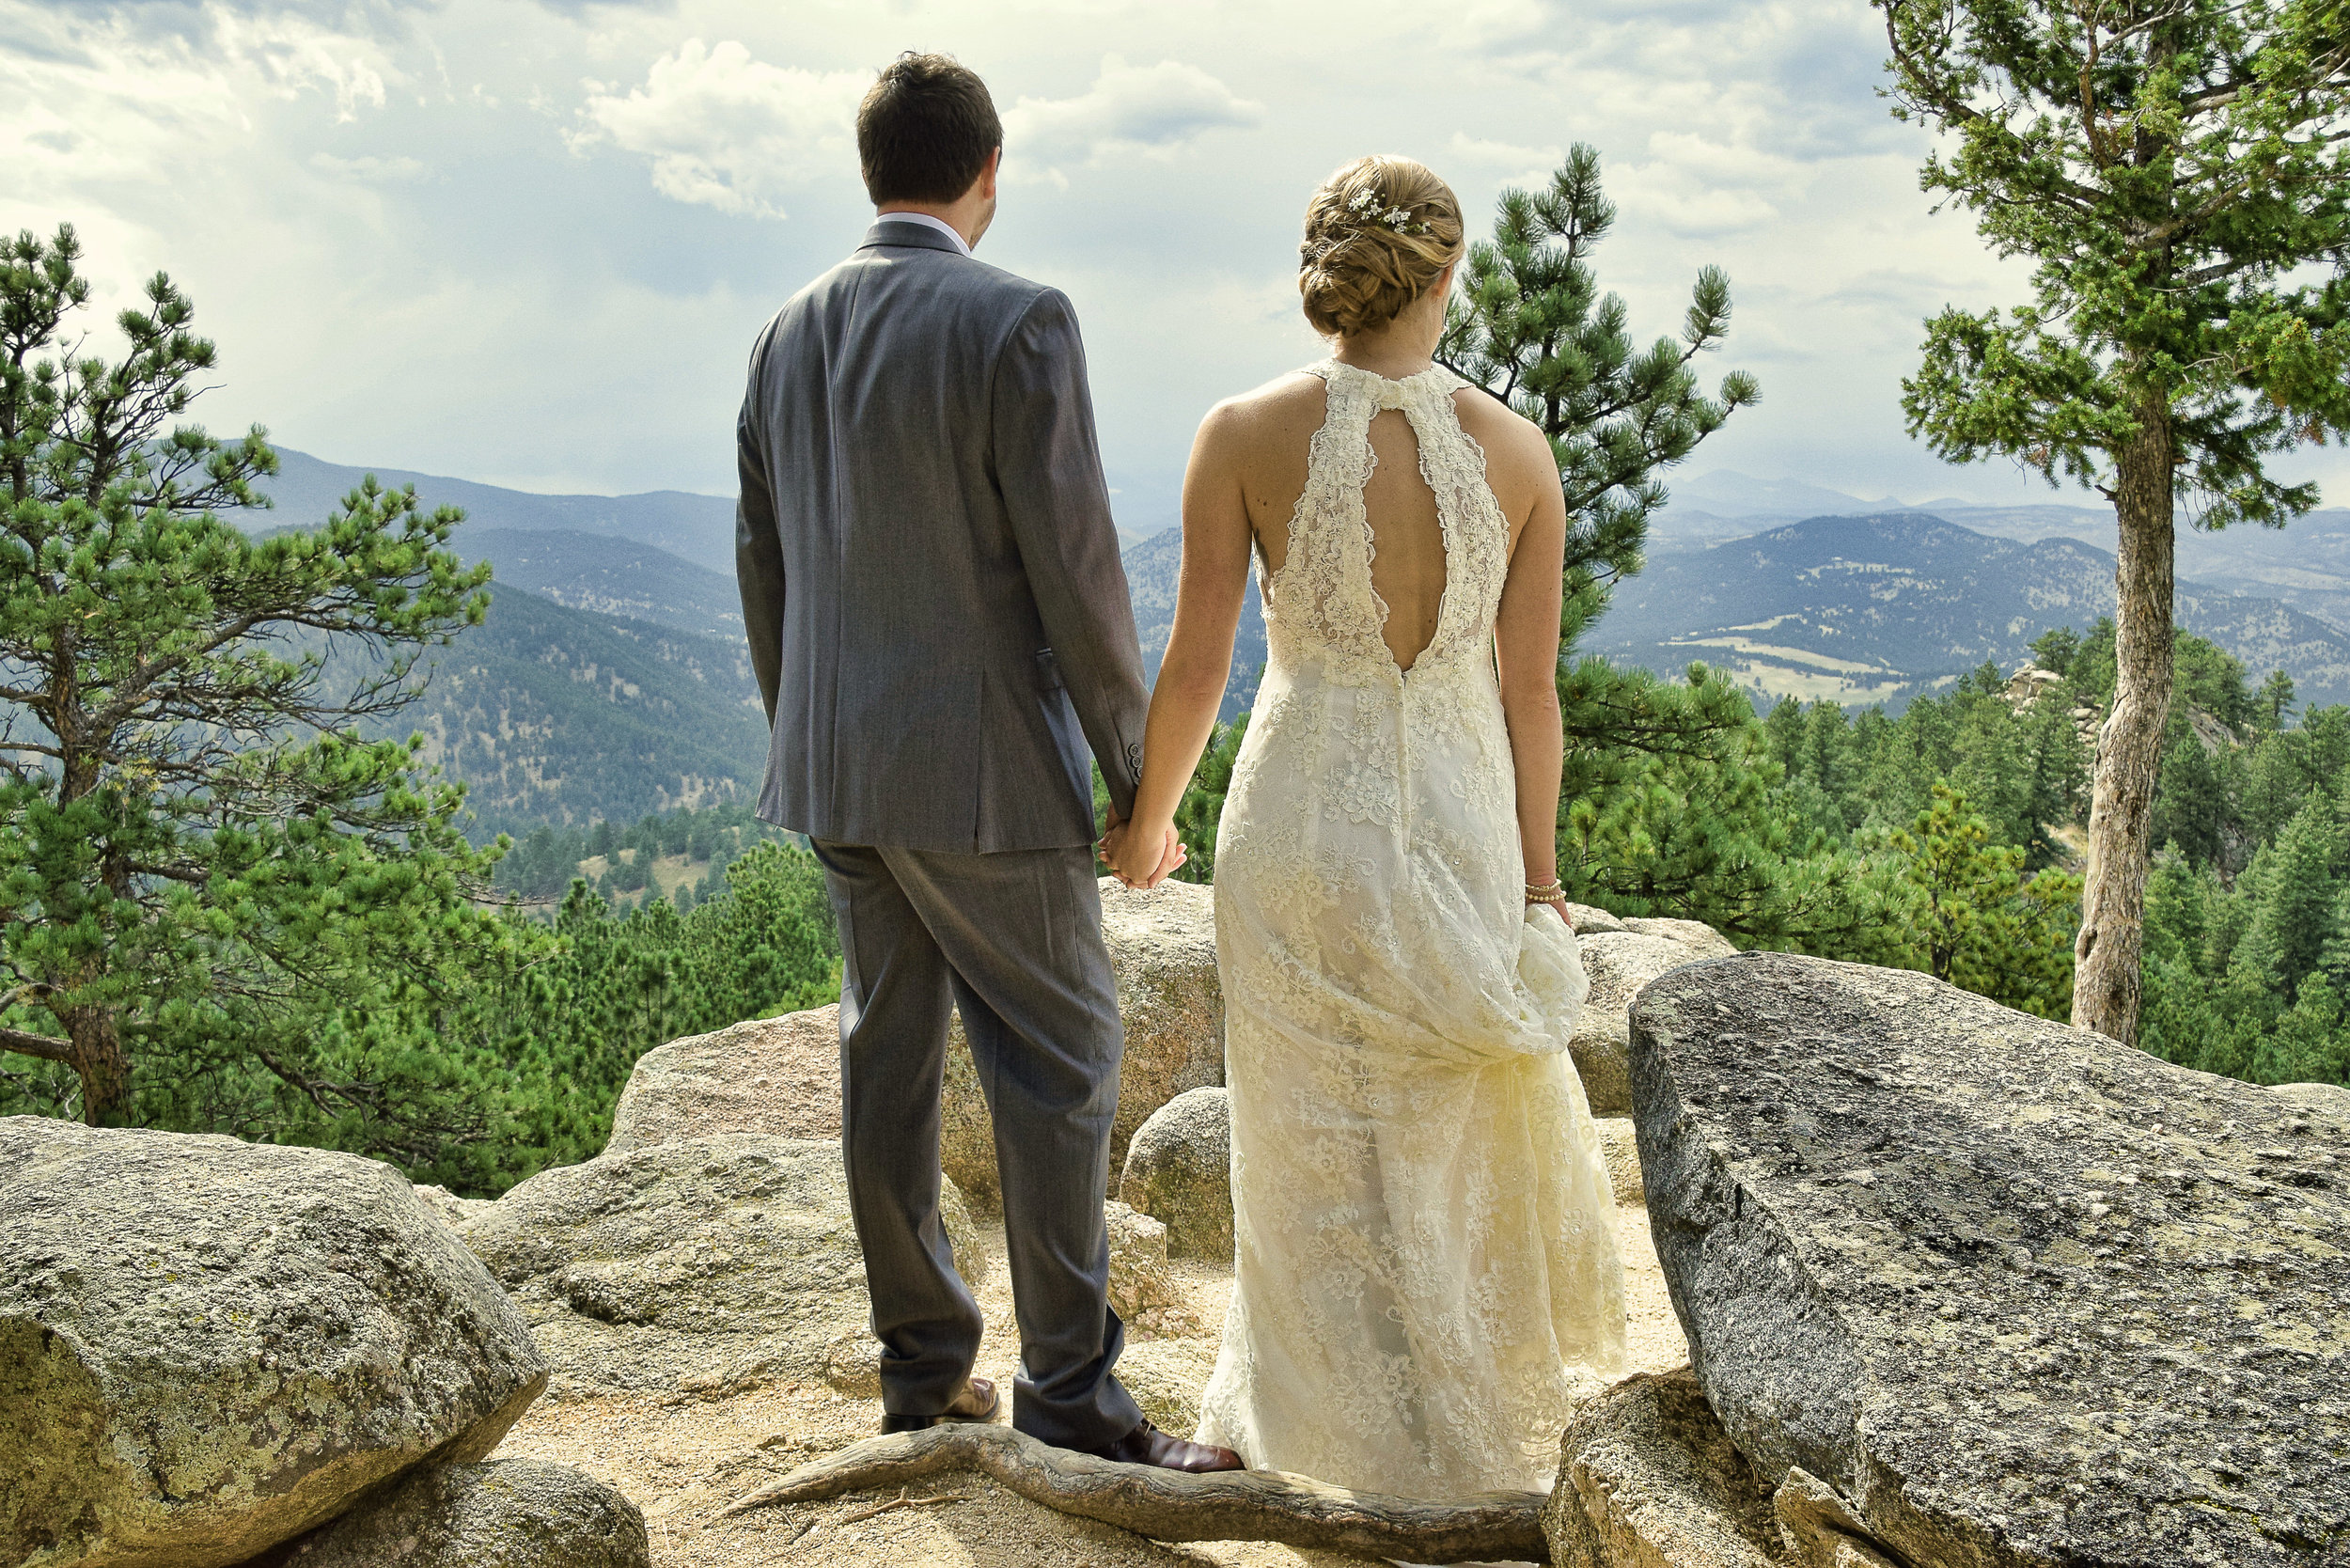 Candid shot of bride and groom in Rocky Mountains.